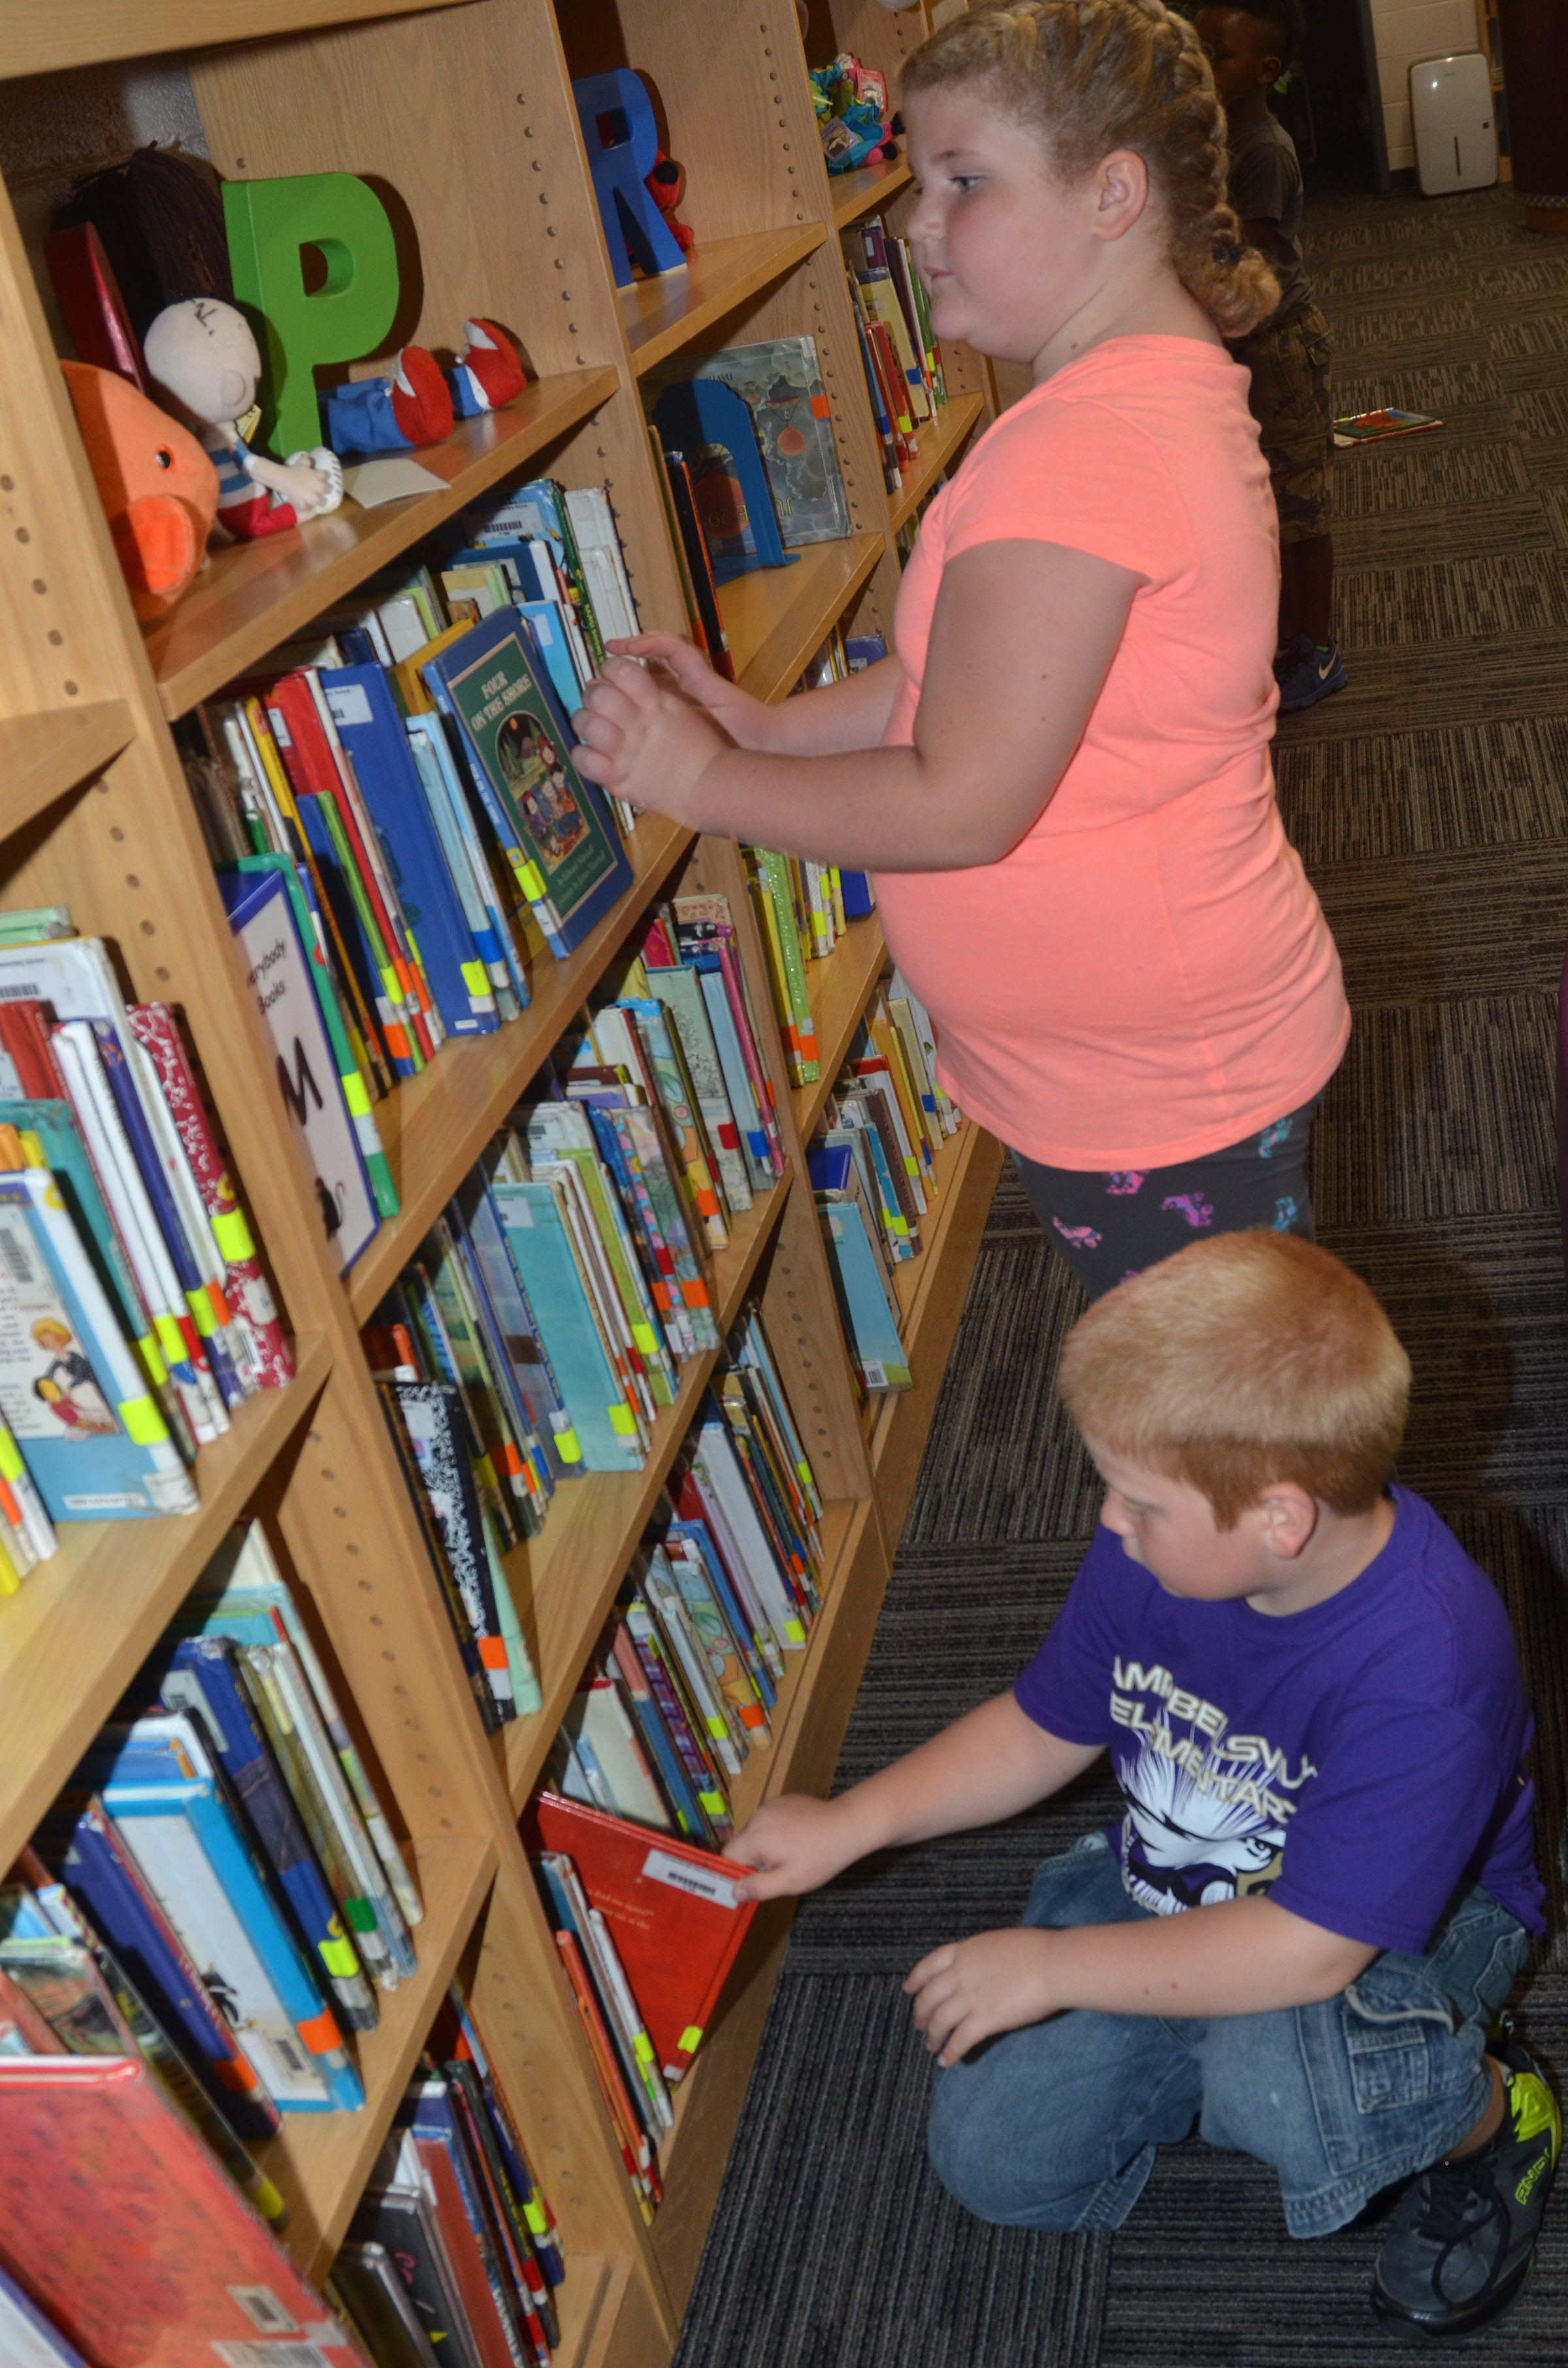 CES second-graders Elizabeth Foster and Ben Parrott look for books in the library.